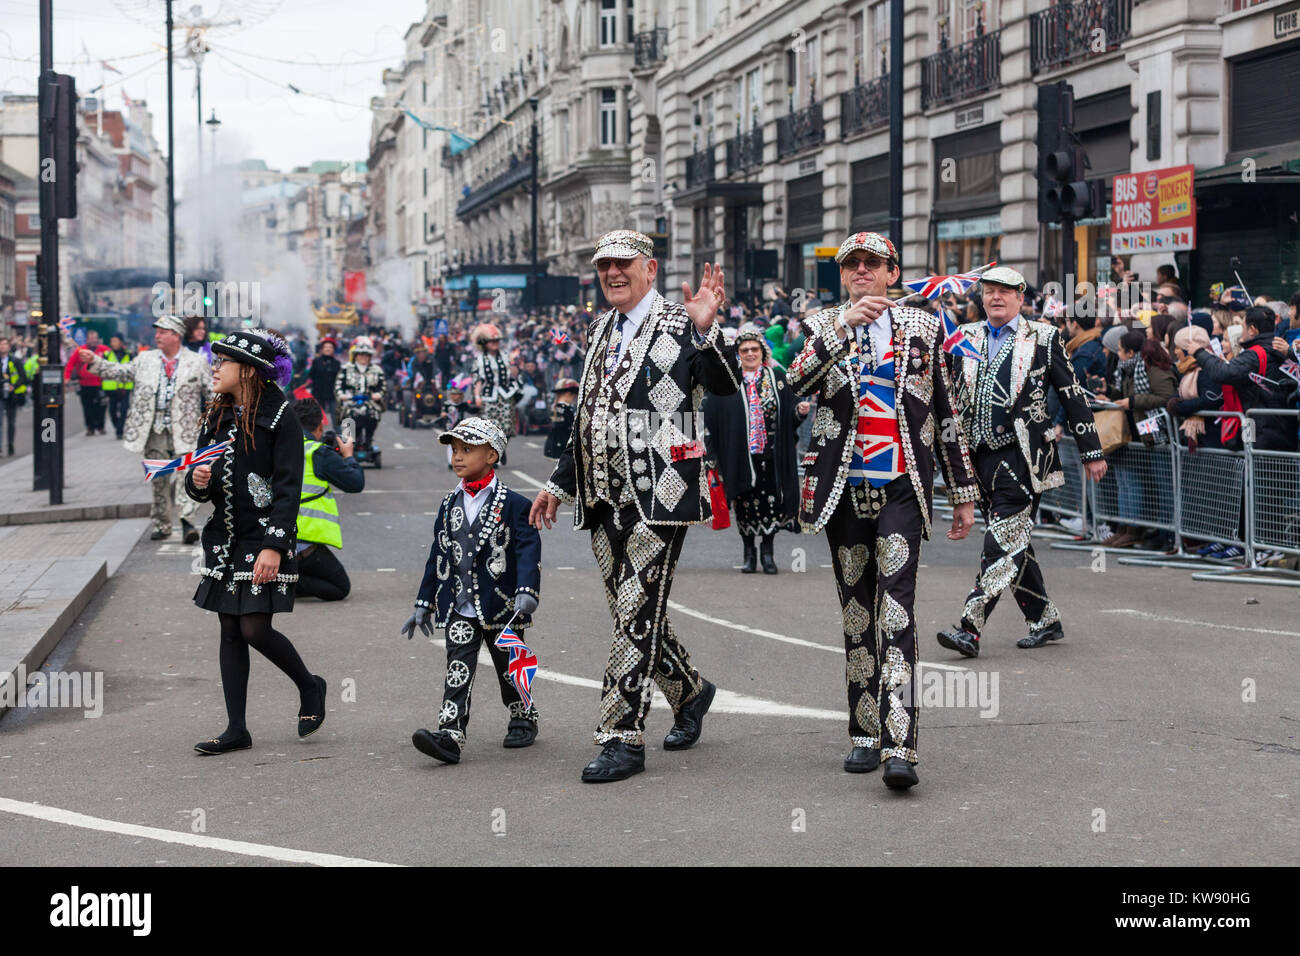 London, UK. 1st Jan, 2018. The Pearly Kings and Queens on Picadilly. Performers, bands and other participants entertain - Stock Image